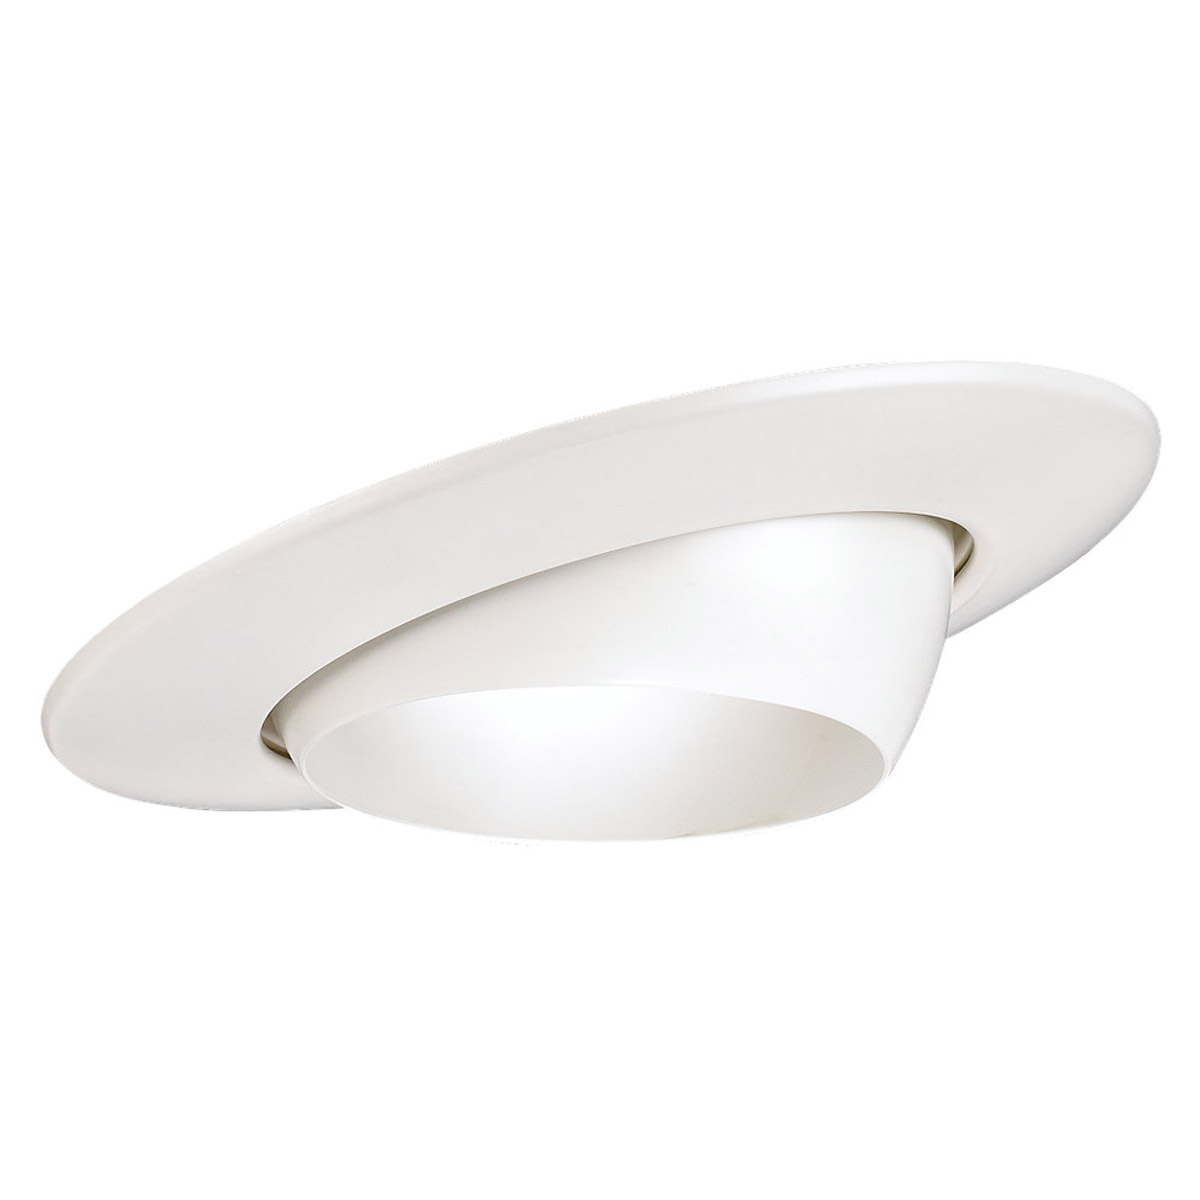 Sea Gull Lighting Signature Recessed Trim Only in White 1136-15 photo